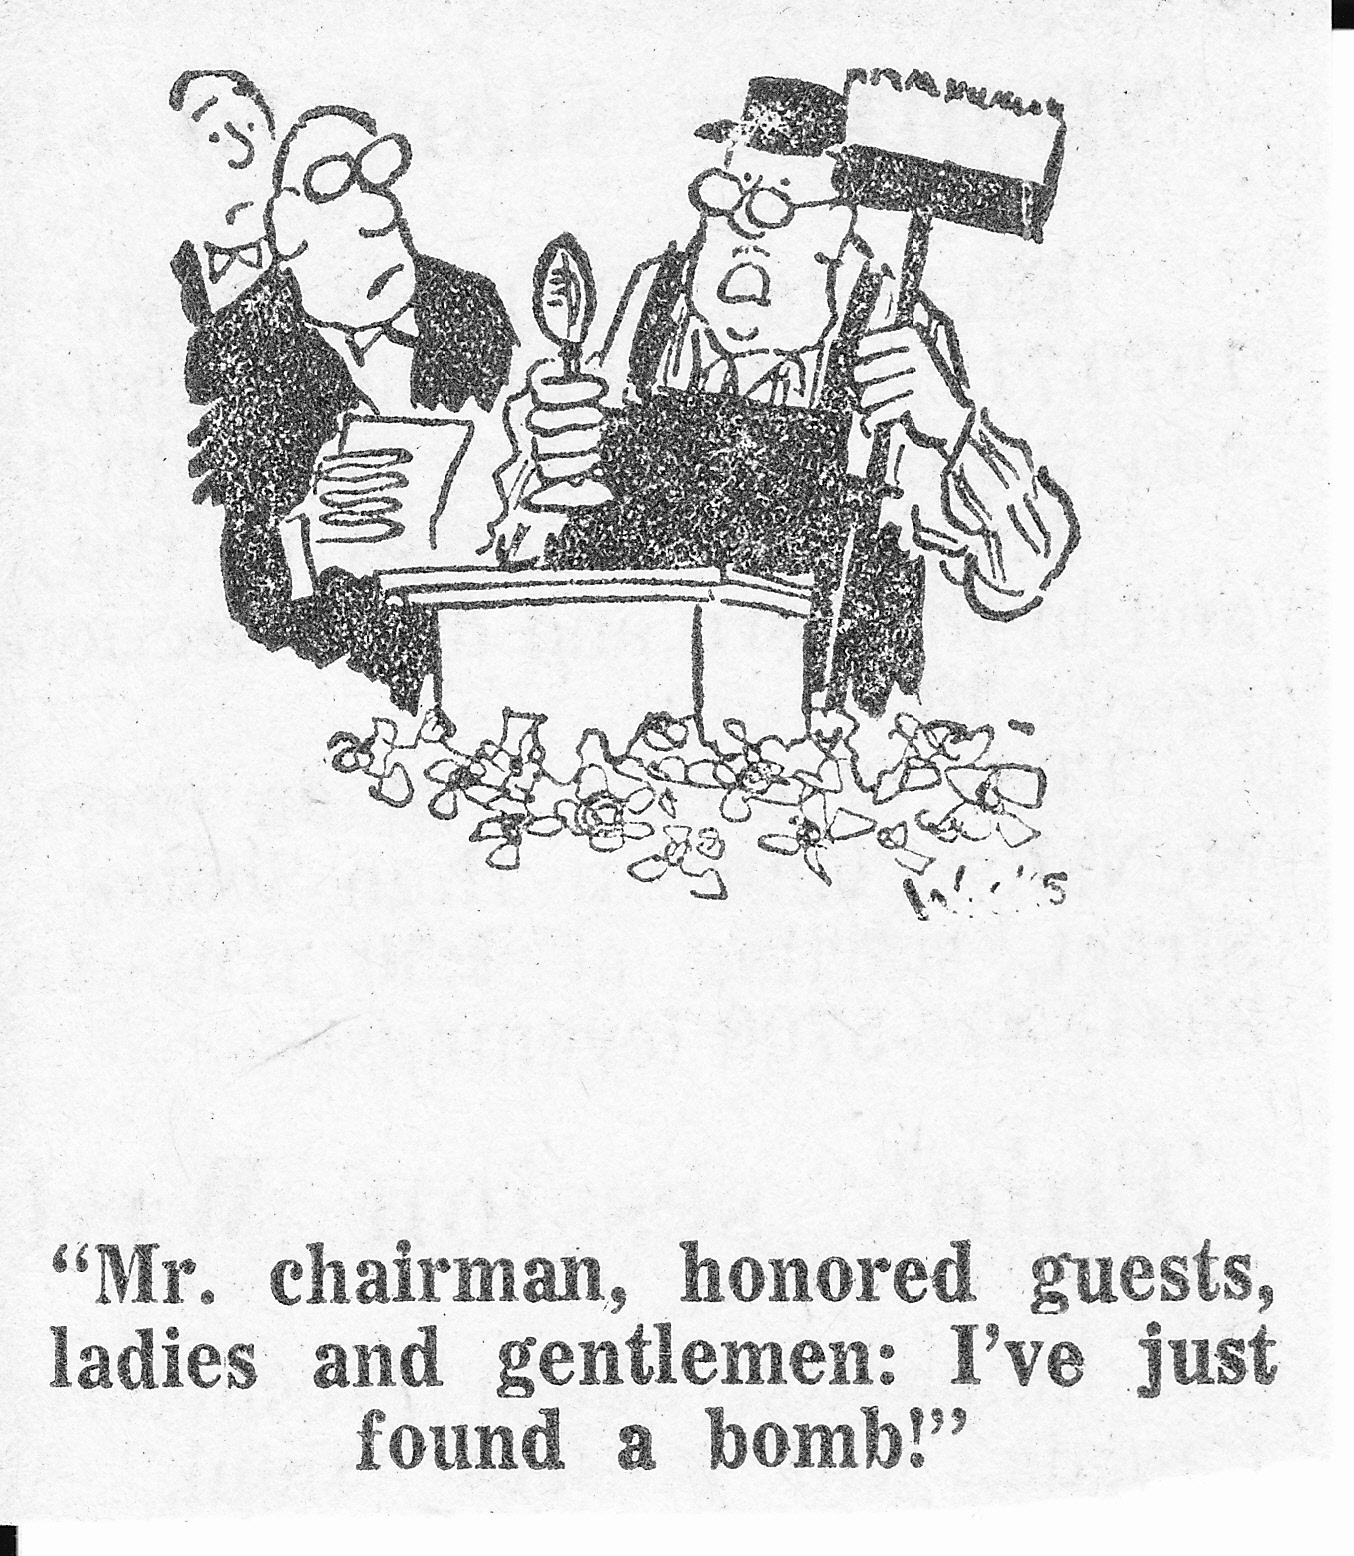 C:\Users\Robert\Documents\CANADIAN CARTOONING ILLUSTRATION and ANIMATION\IMAGE BY CARTOONIST OR ILLUS. W\WICKS BEN, panel, publication unknown .jpg